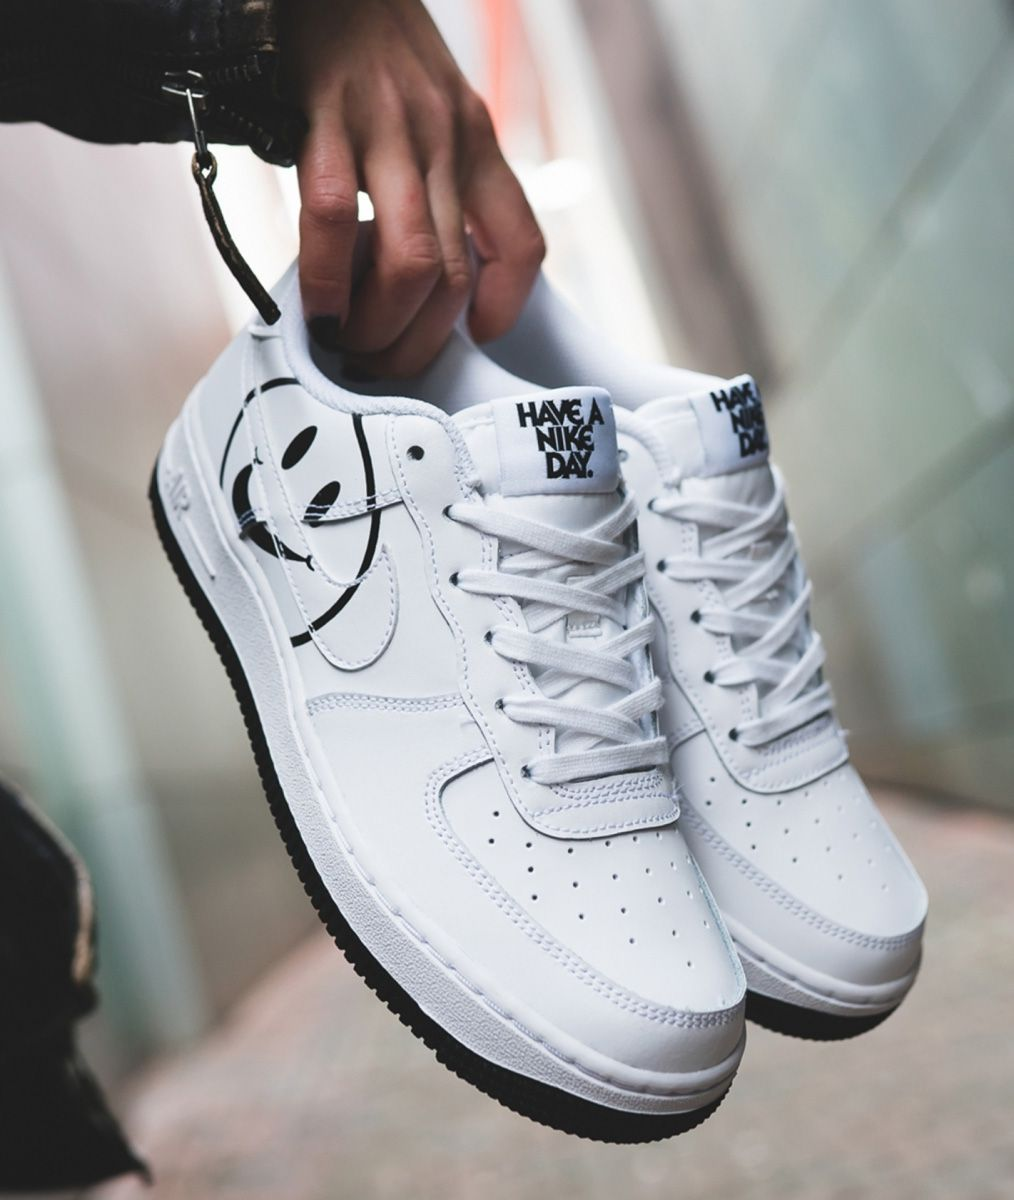 chaussure nike air force avec smilet